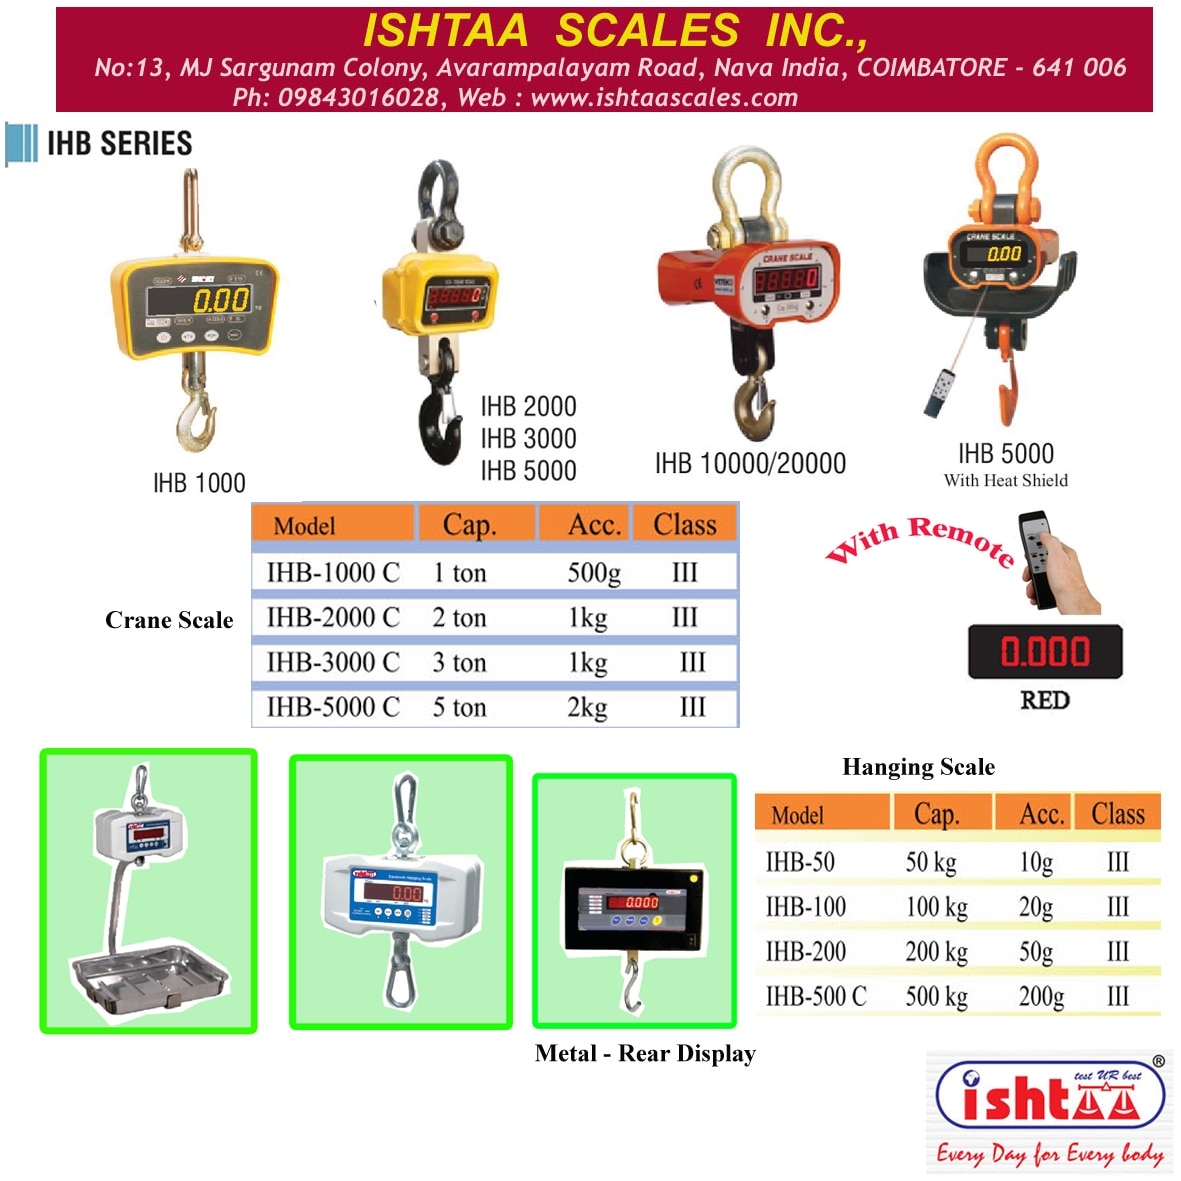 We have lot of Successful Electronic Weighing Systems are available with us. All types of Basic Weighing Can be Done.  ISHTAA -  IHB Series  #CraneScale #Hangingscale #FoundryWeighingScale #HeatTreatmentWeighingScale  #AutomobileWeighingScales  #Iron& SteelFactoryWeighingScale   #IndustrialWeighingScale   #50to500KgHangingScale  #1Ton to 20Tons Crane Scale   #EngineeringIndustryWeighingScale #HeavyDutyWeighingScale #Weighing  #AccurateWeighing #AccurateScale #IshtaaWeighing #Scales  Click here to know more : https://goo.gl/m0Wgxa Contact : 9843016028.